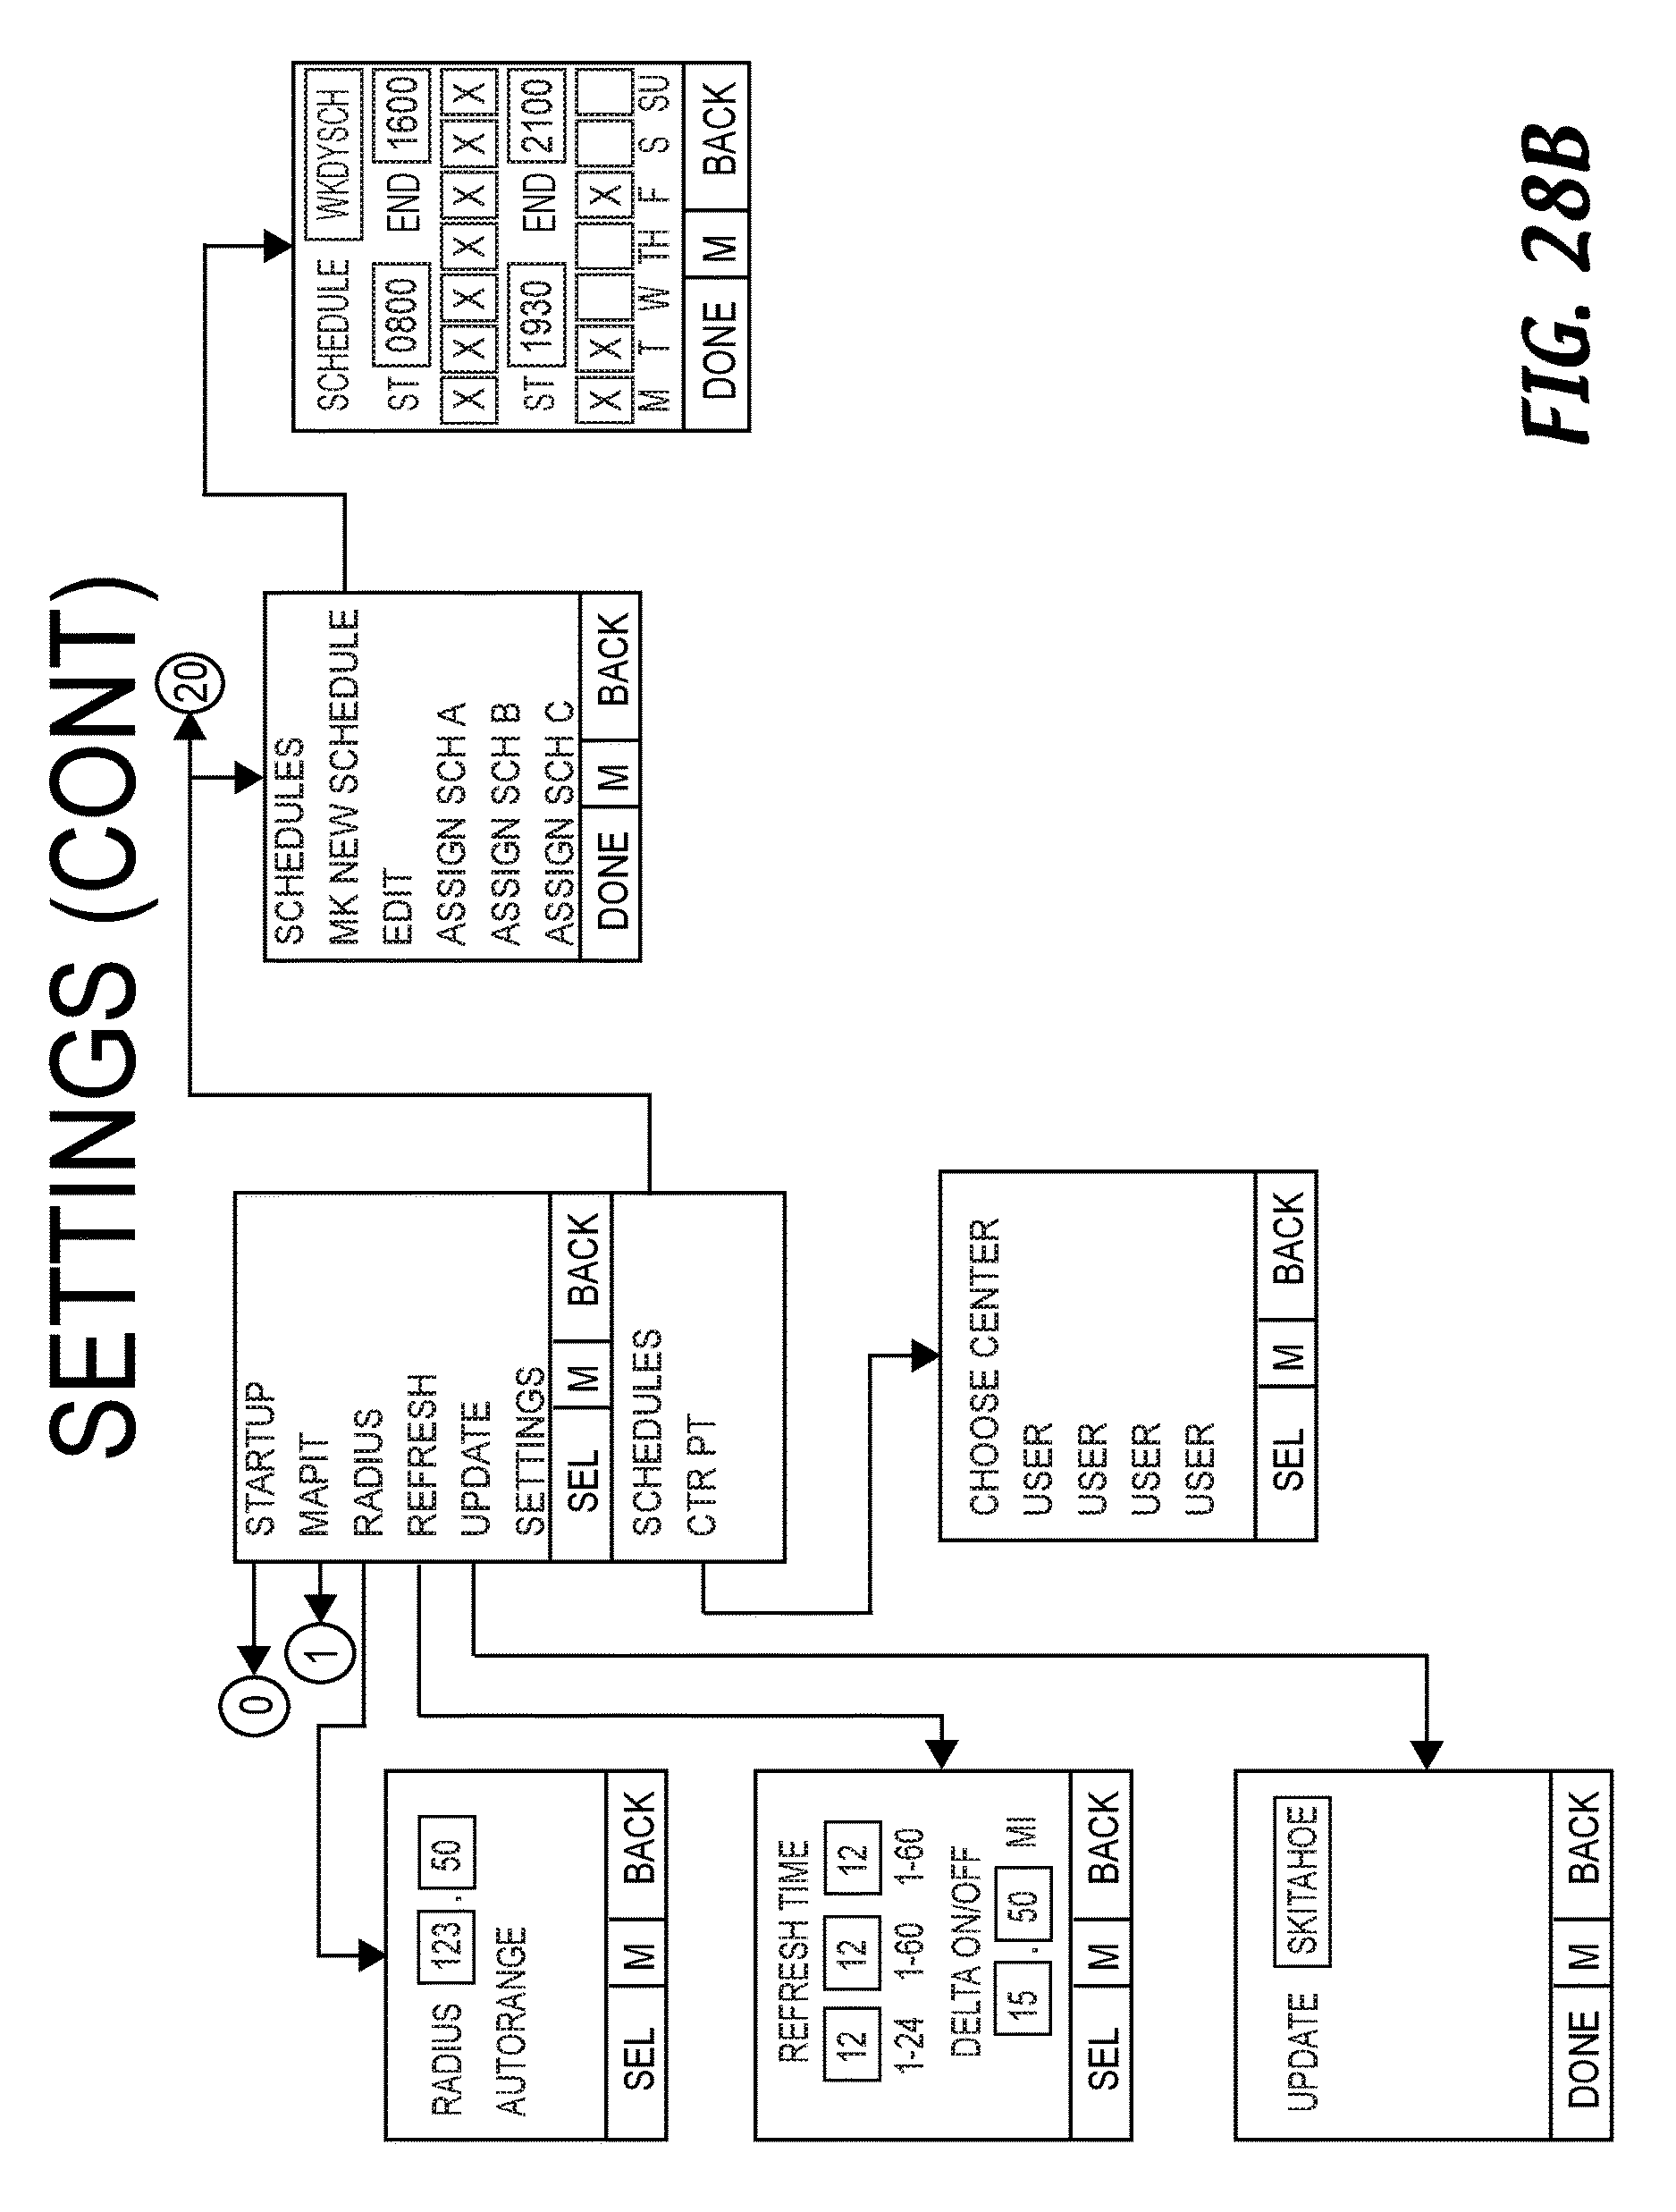 Us9654921b1 techniques for sharing position data between first and us9654921b1 techniques for sharing position data between first and second devices google patents biocorpaavc Gallery